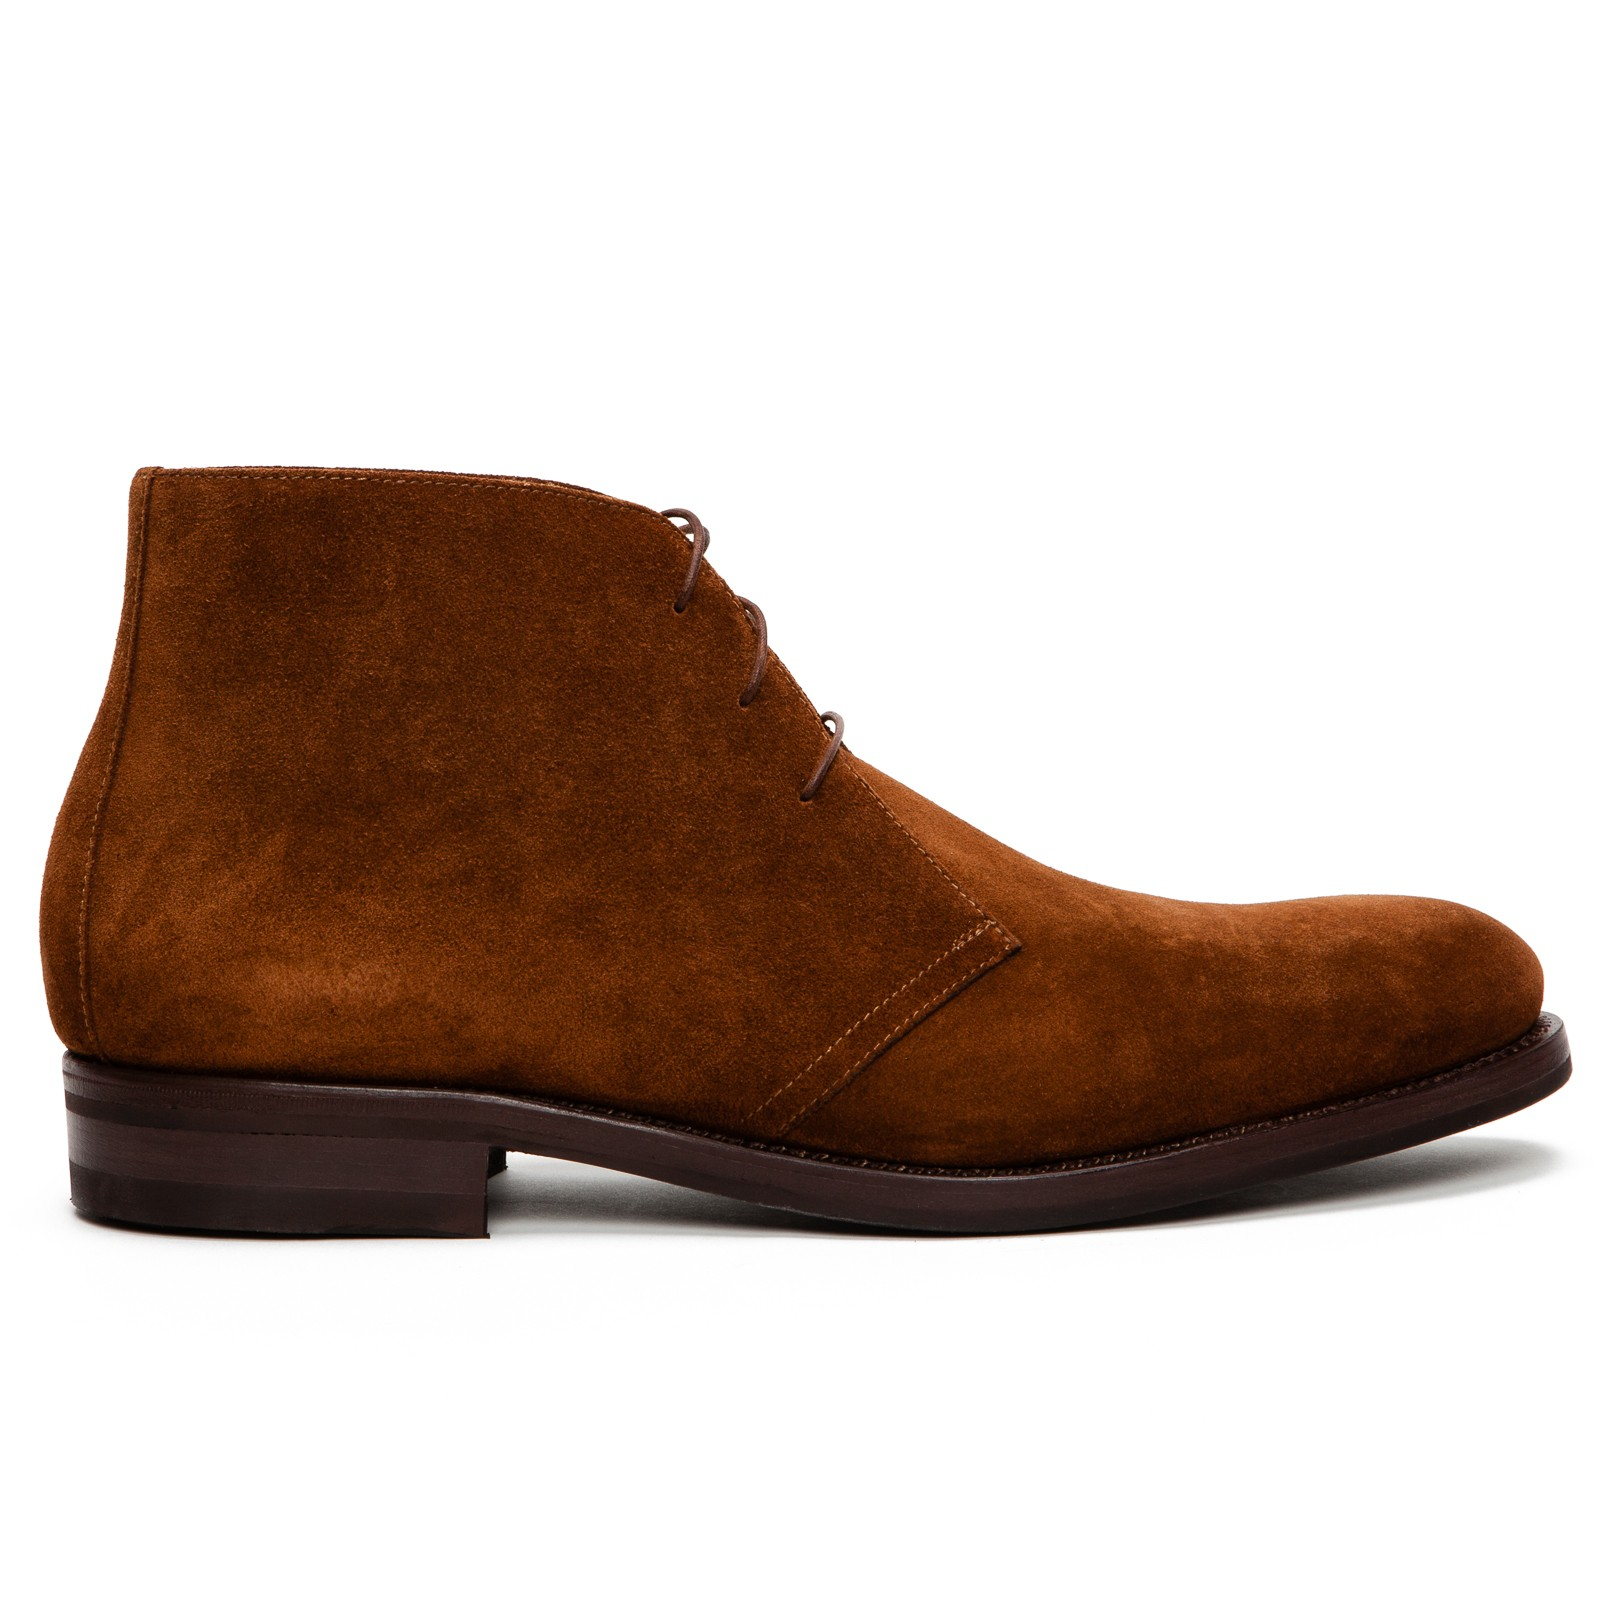 ovadia and sons suede chukka boots in brown for lyst